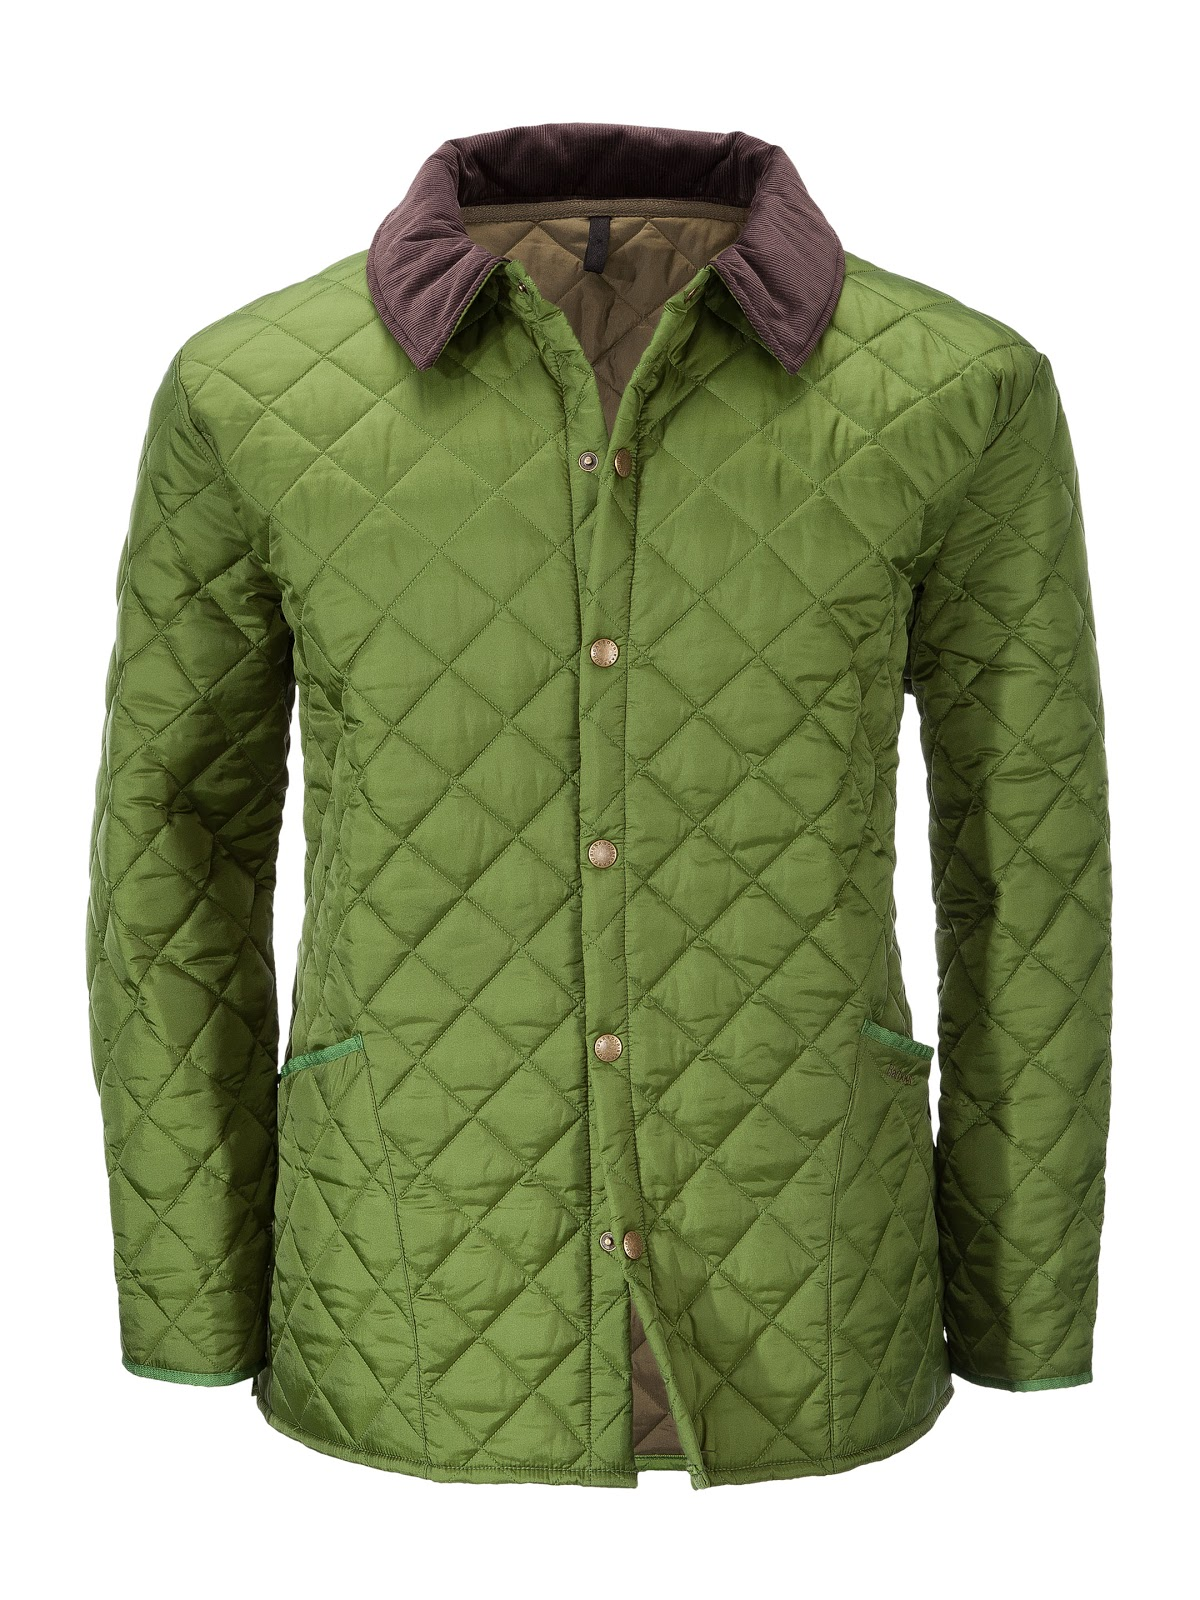 Barbour jacke damen grun